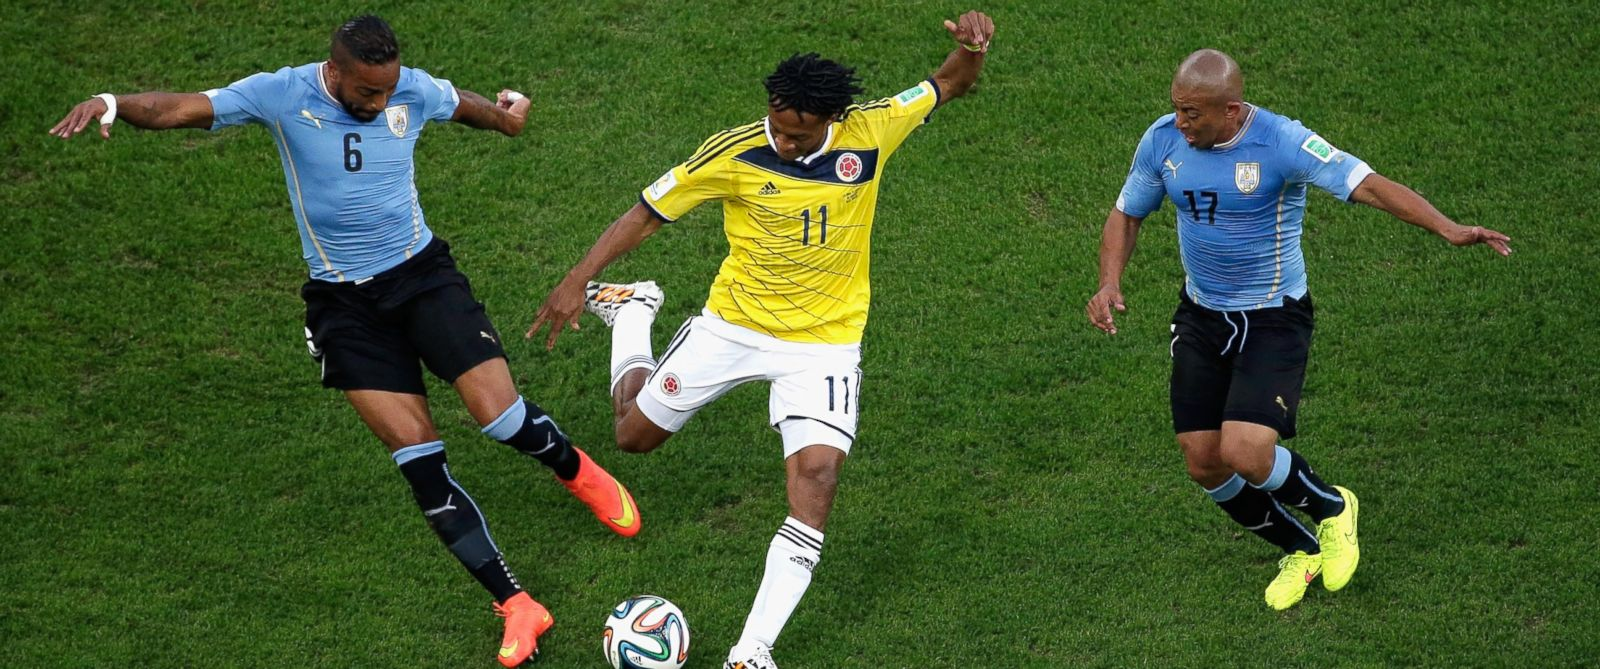 PHOTO: Alvaro Pereira of Uruguay challenges Juan Guillermo Cuadrado of Colombia during the 2014 FIFA World Cup Brazil round of 16 match between Colombia and Uruguay at Maracana on June 28, 2014 in Rio de Janeiro, Brazil.